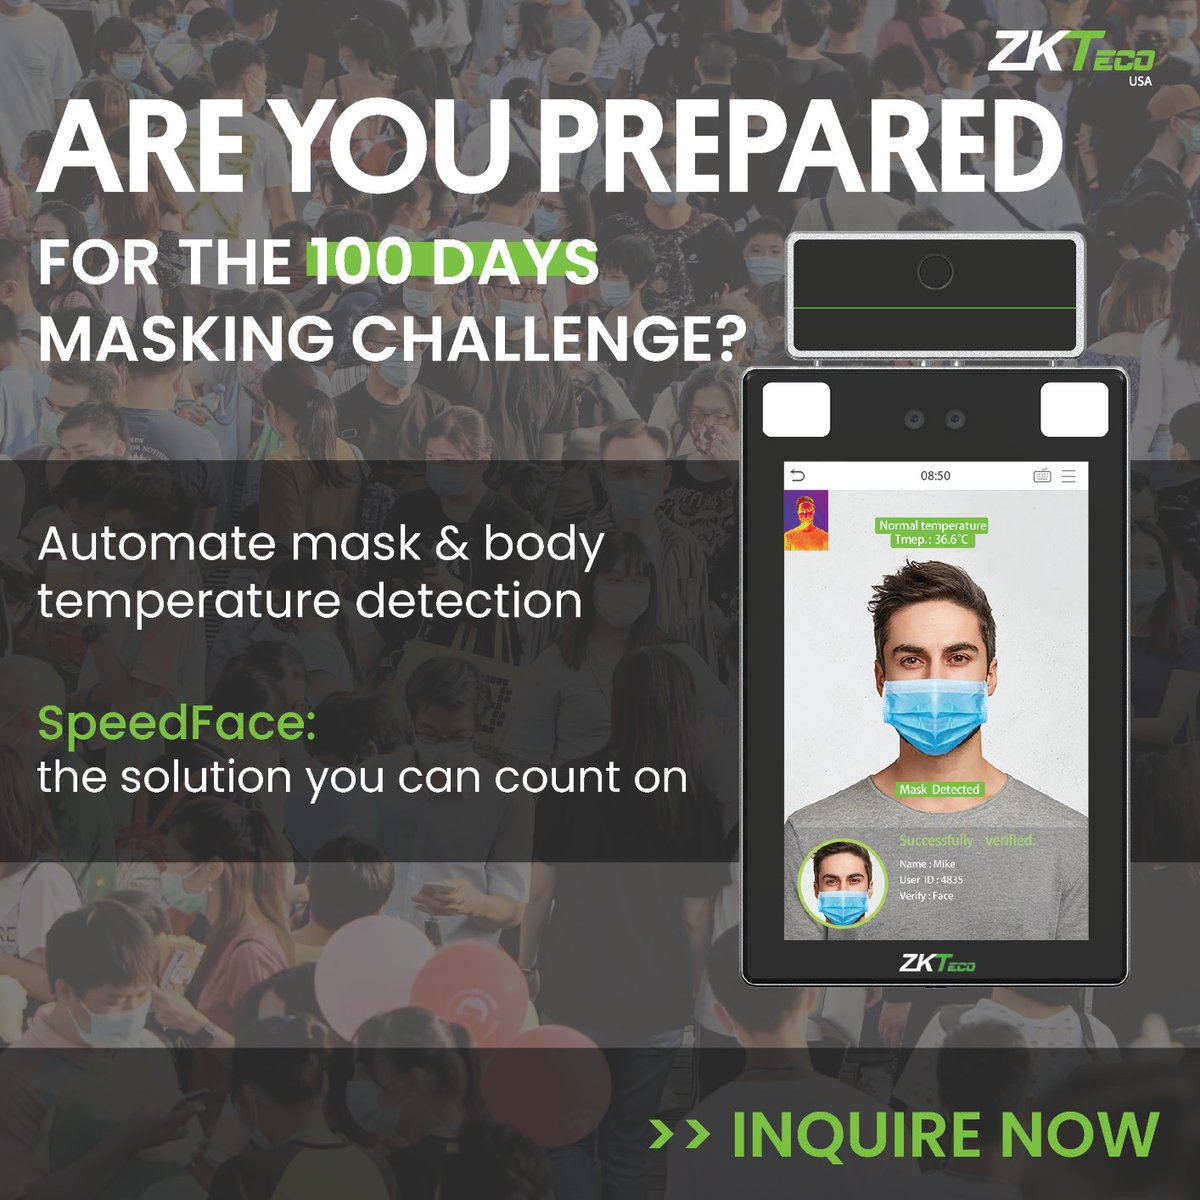 ZKTeco USA has a variety of #Touchless #SecuritySolutions to match your project needs & budget. Automate your mask & body temperature detection and expect a quick return on investment! Inquire now: https://t.co/a715mEAZgj #MaskingChallenge #TechInnovation #SecurityInnovation https://t.co/DR49tqbZtg